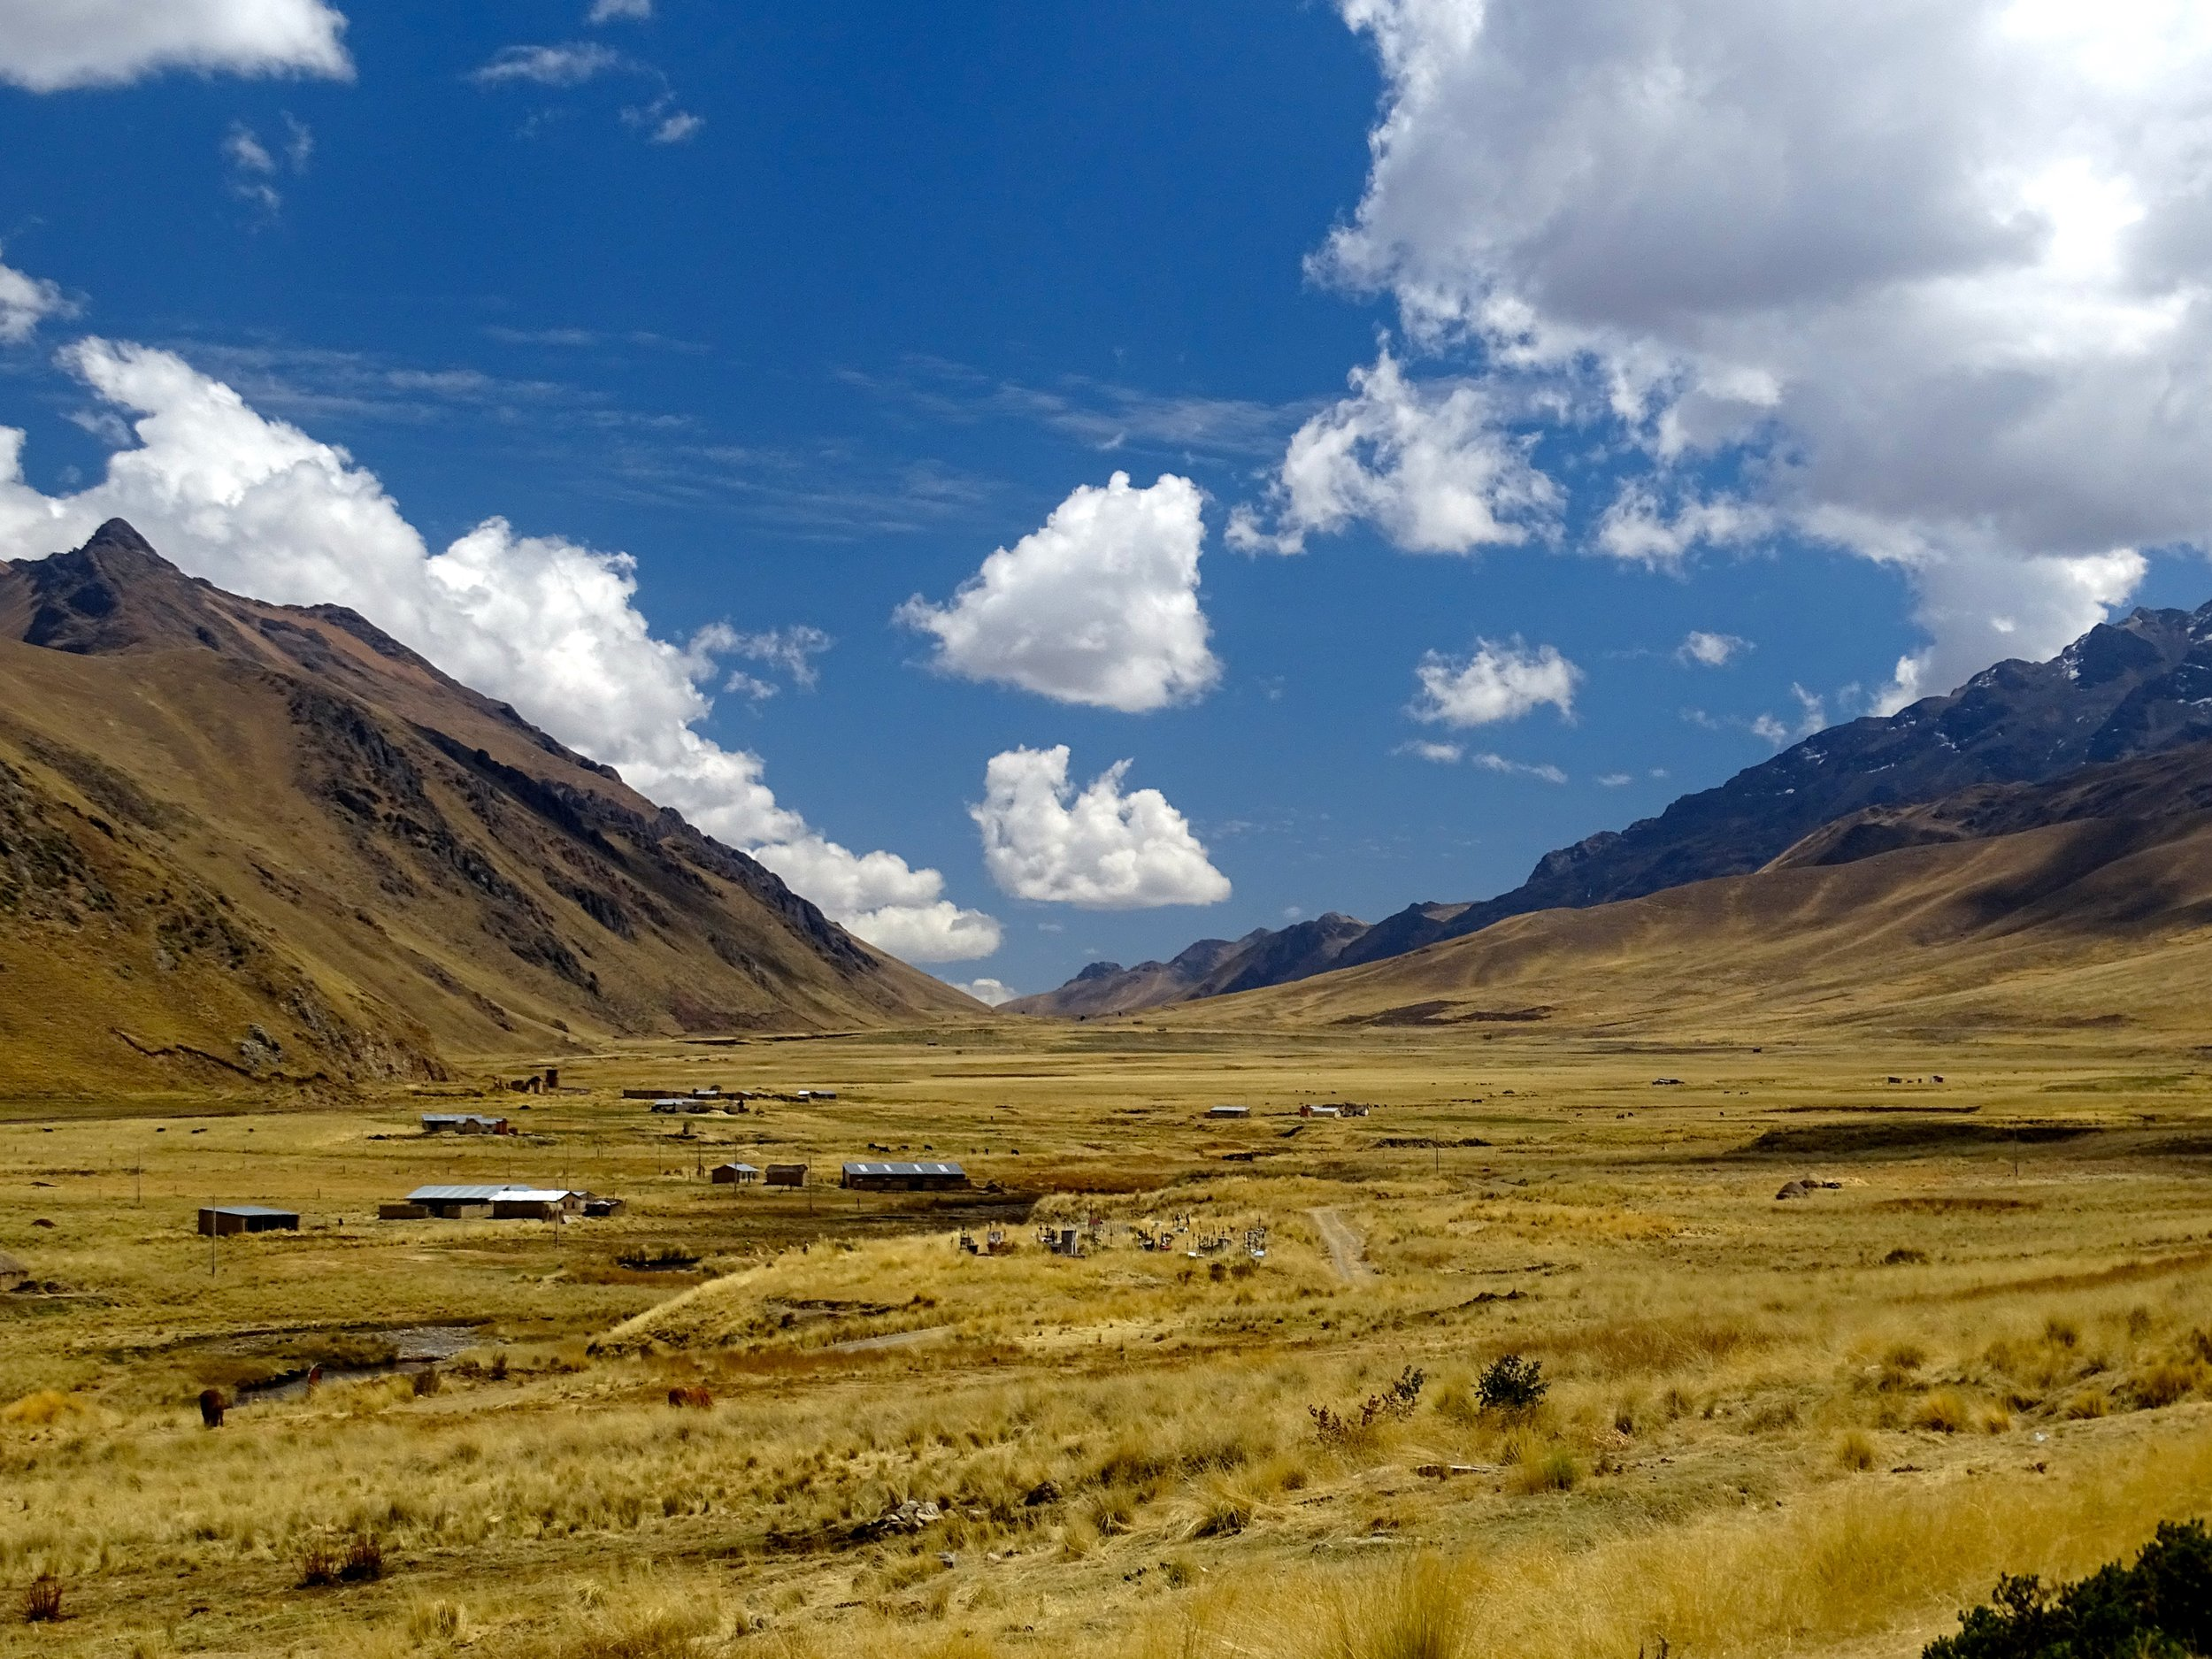 More of the ancient agricultural setting as we approach the Sacred Valley to the northwest of us.